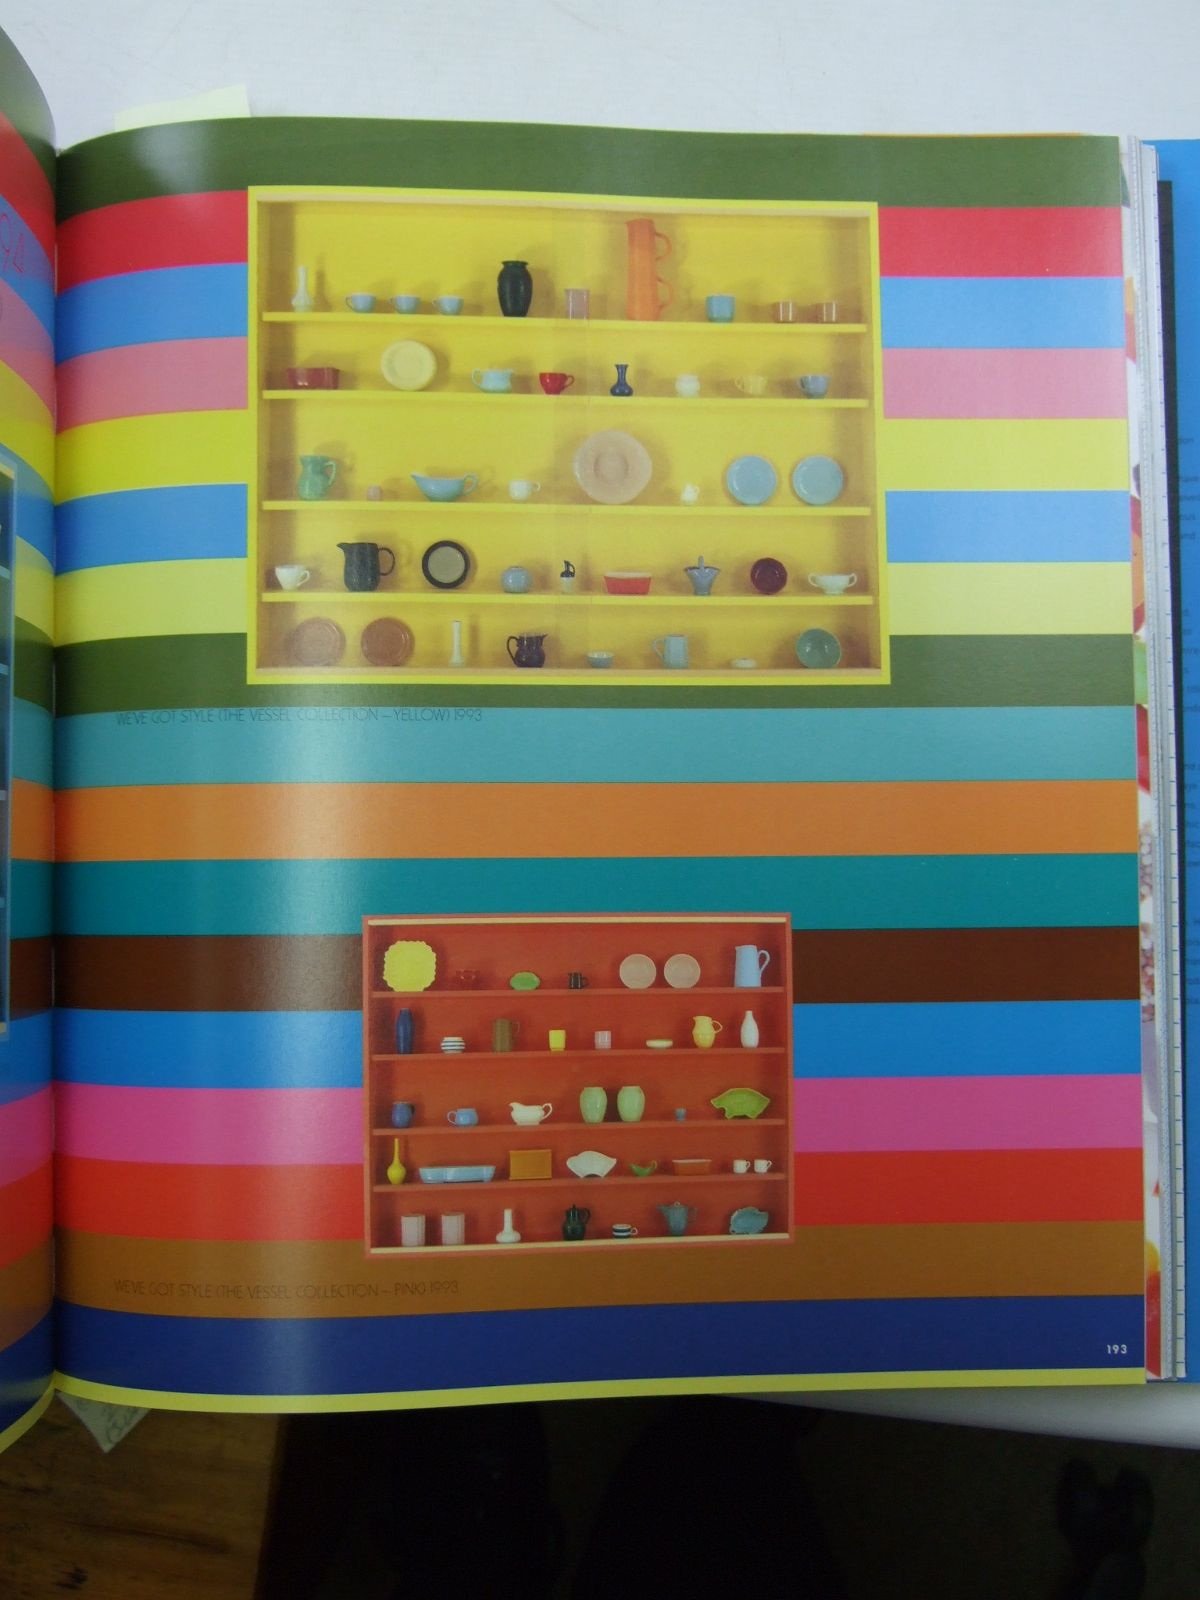 Photo of I WANT TO SPEND THE REST OF MY LIFE EVERYWHERE, WITH EVERYONE, ONE TO ONE, ALWAYS, FOREVER, NOW written by Hirst, Damien illustrated by Hirst, Damien published by Booth-Clibborn (STOCK CODE: 2109753)  for sale by Stella & Rose's Books